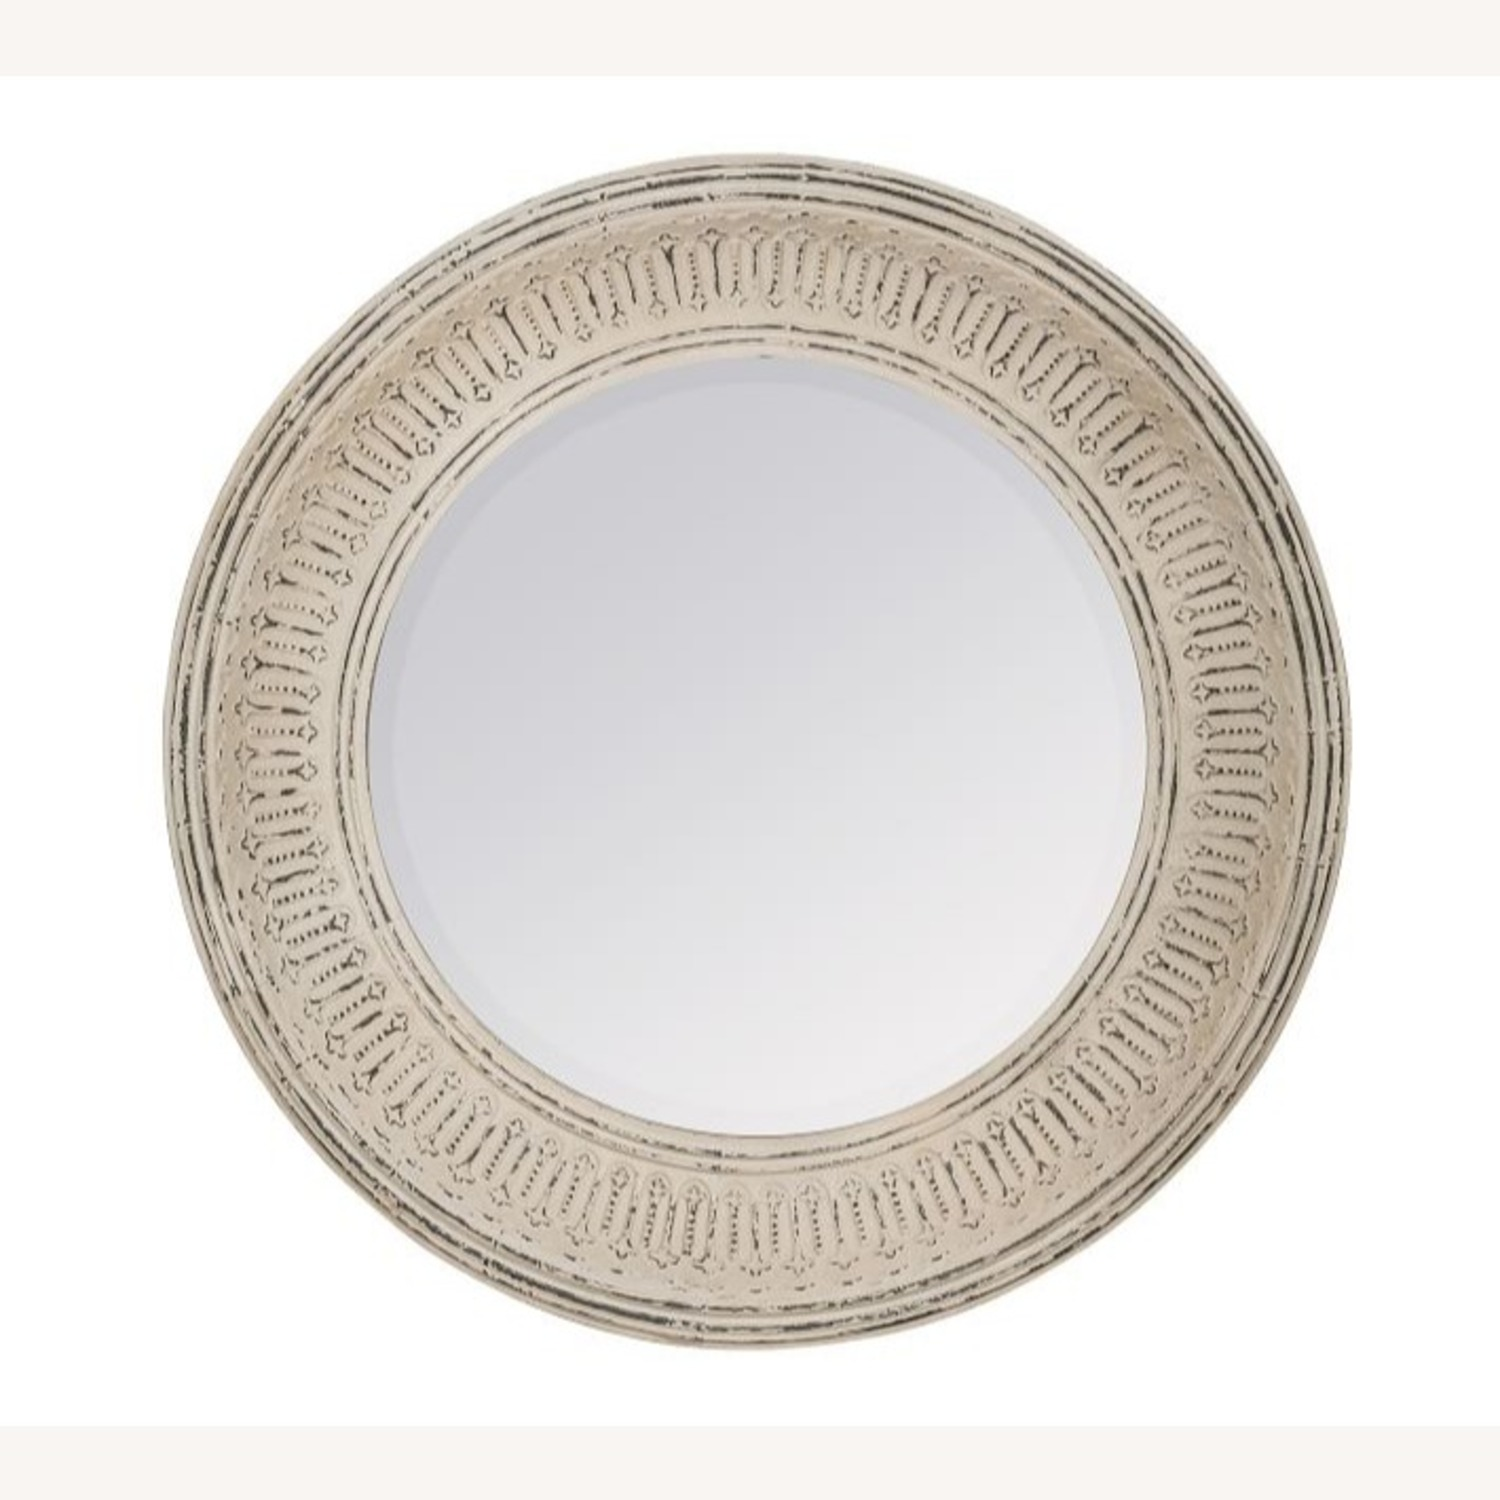 Pottery Barn Winslet Mirror Large Round White - image-1